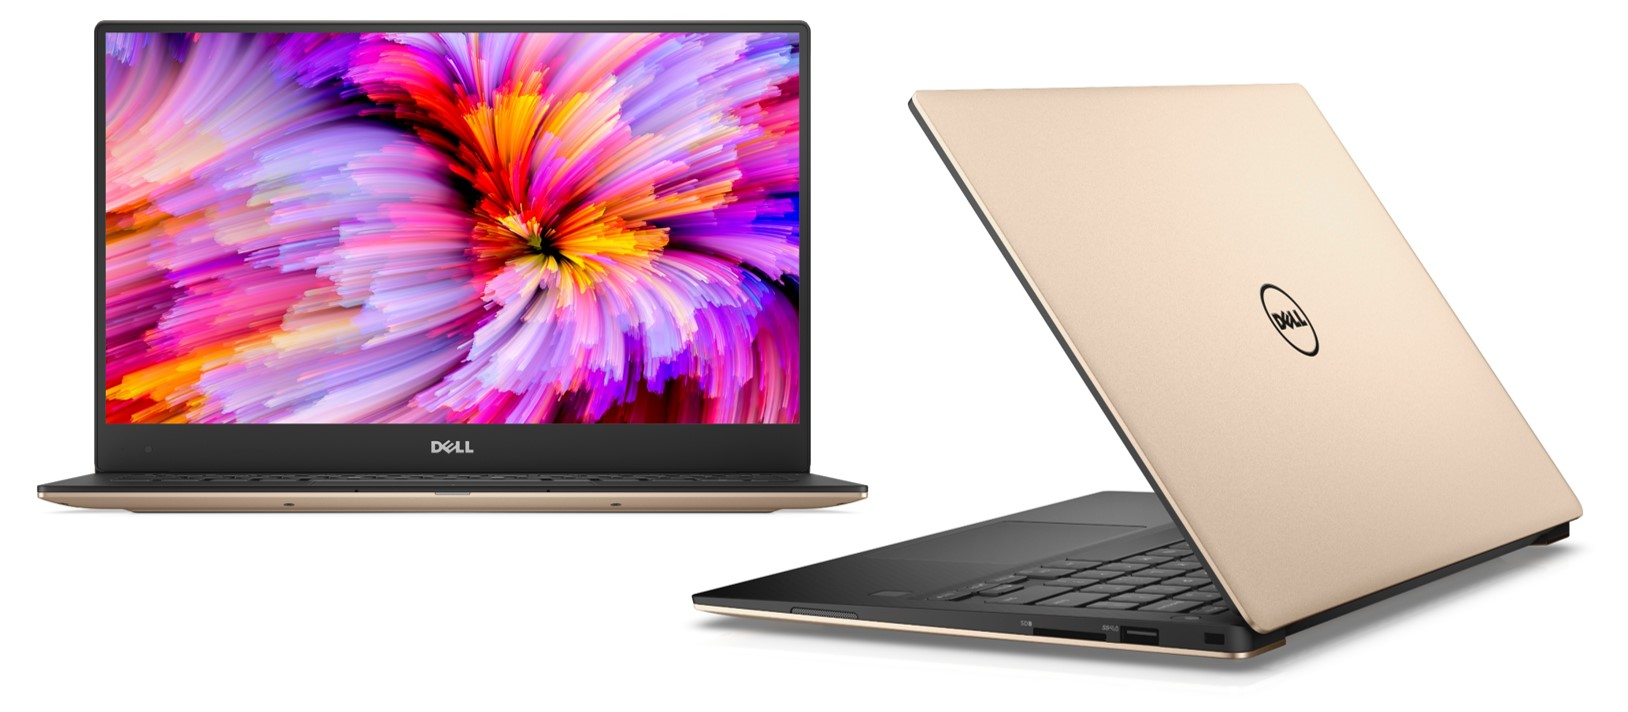 Dell Xps 13 Laptop Gets Intel Kaby Lake Cpus And Larger